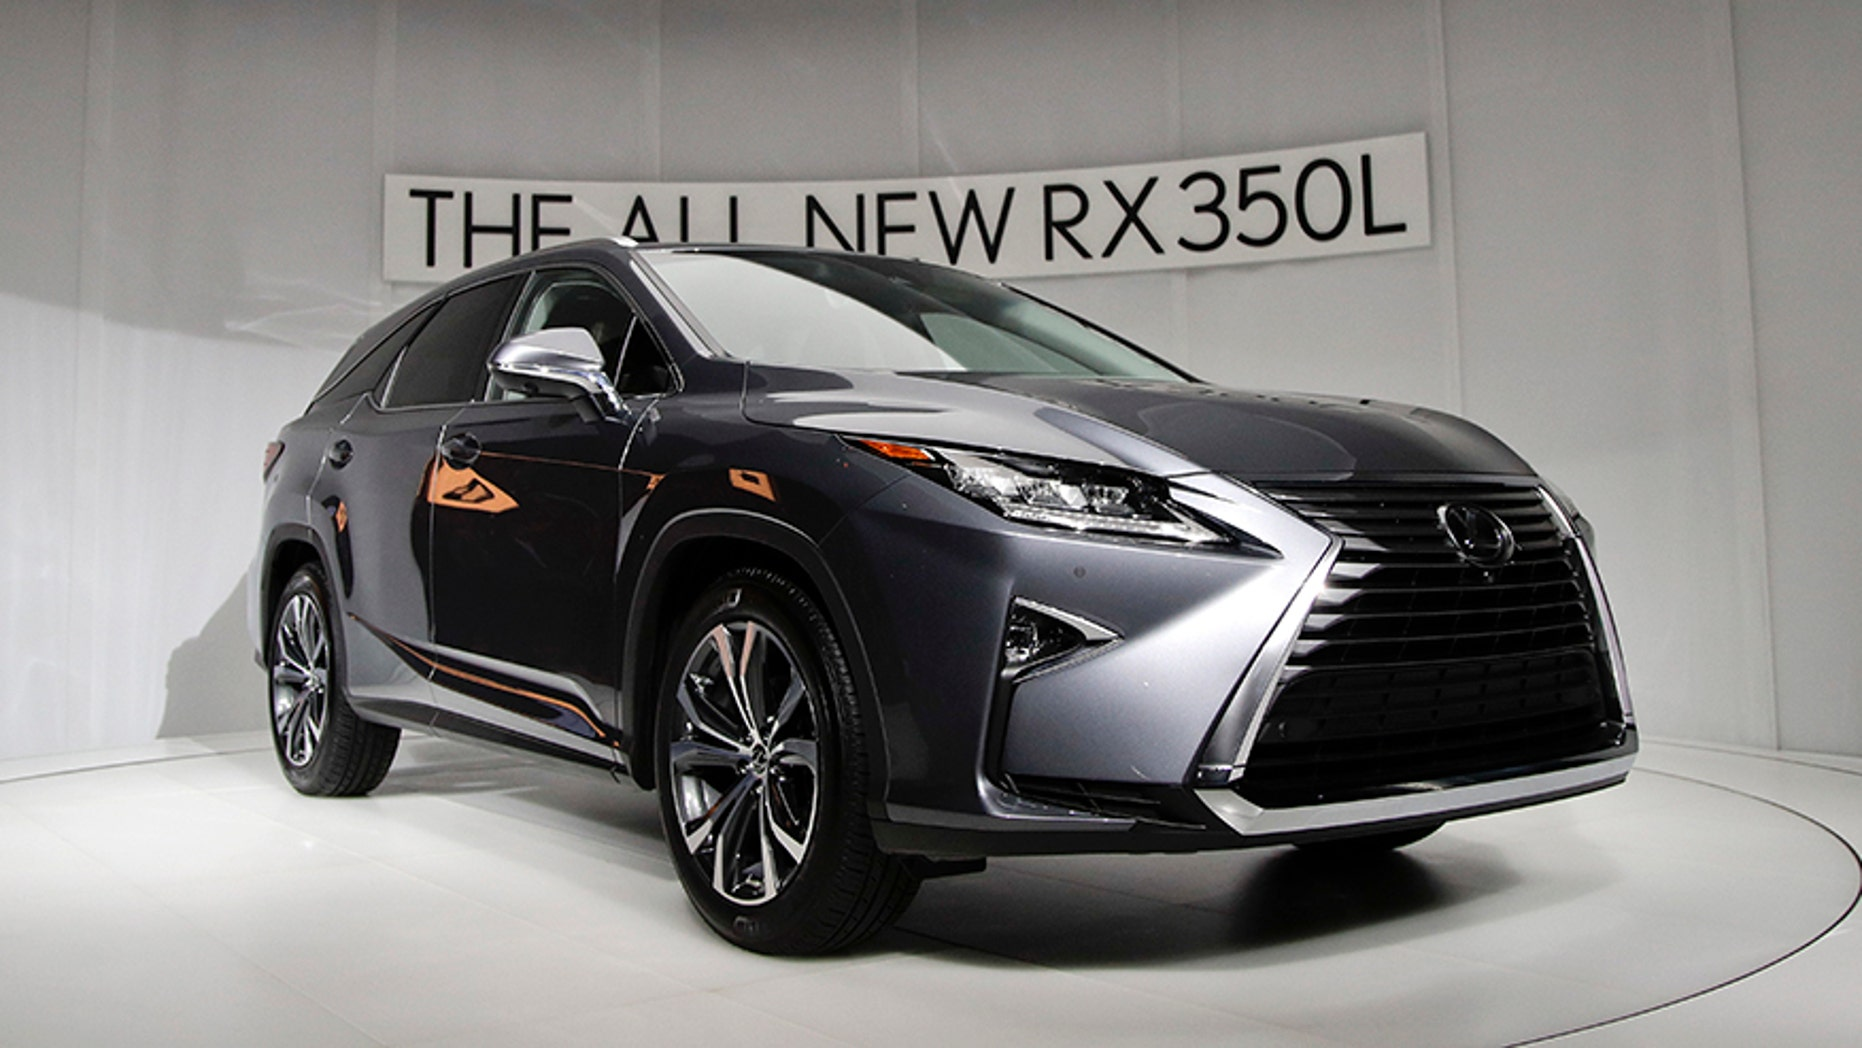 The 2018 Lexus RX 350L is unveiled at the Los Angeles Auto Show, Wednesday, Nov. 29, 2017, in Los Angeles. (AP Photo/Jae C. Hong)